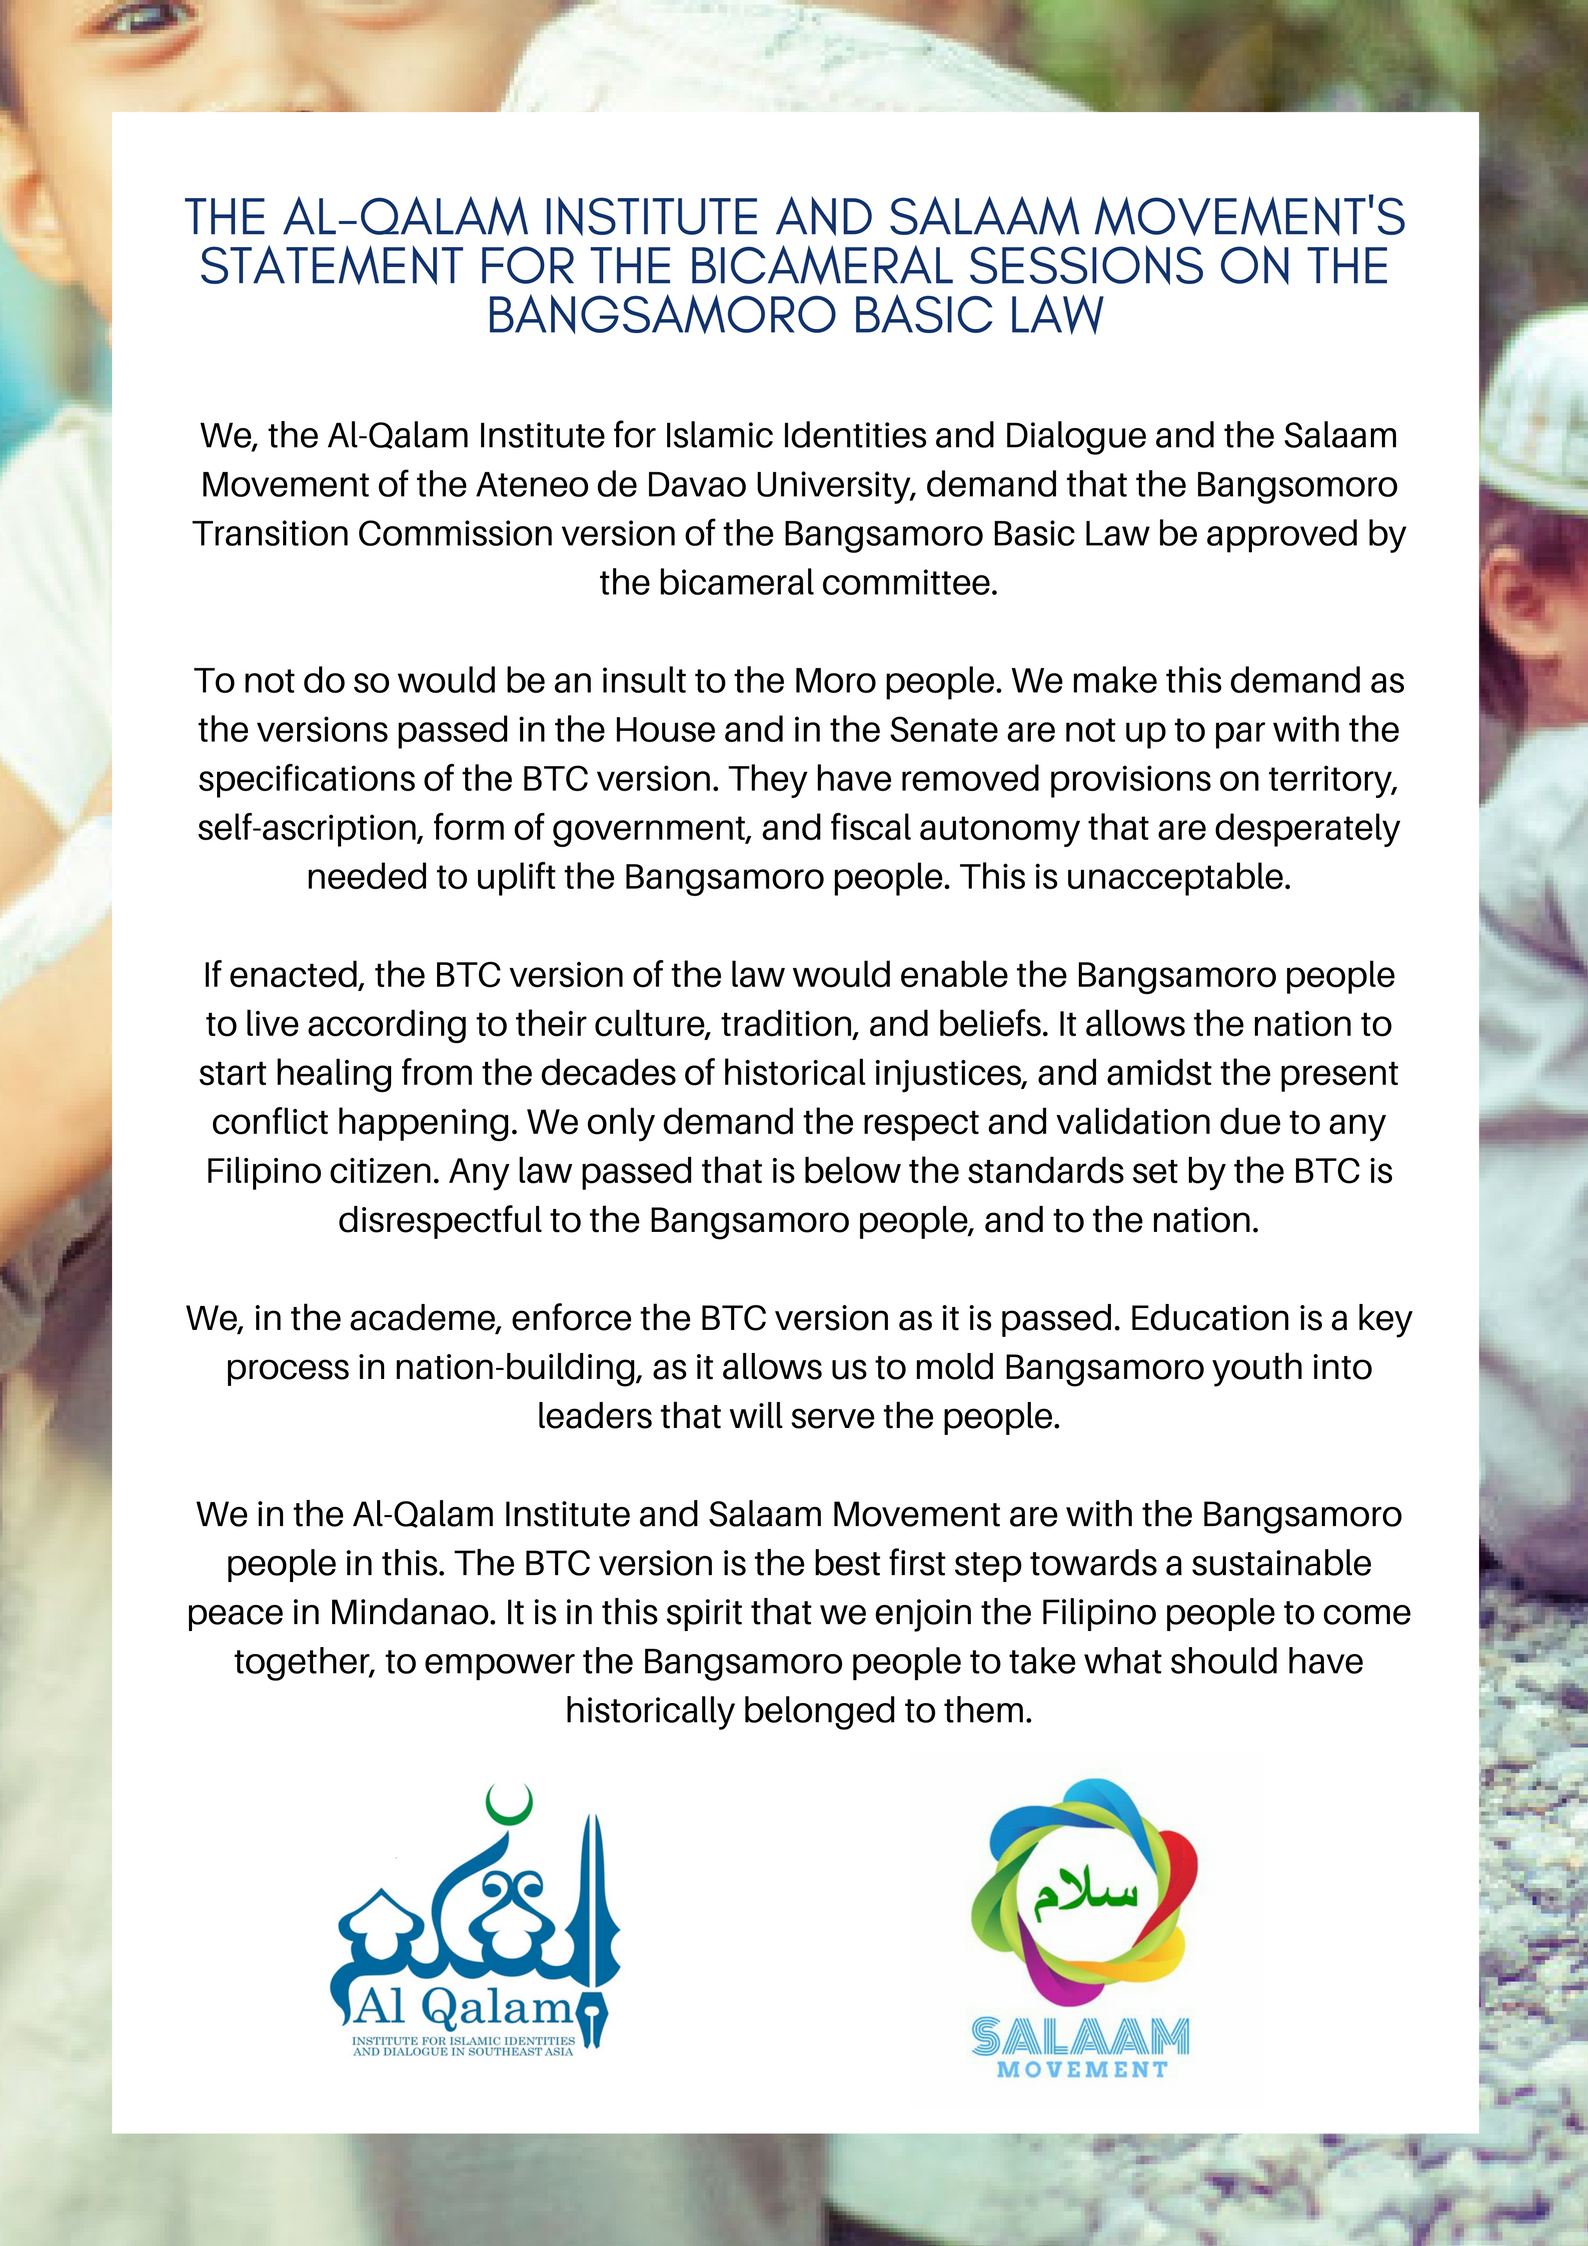 Statement of the Al Qalam Institute on the Bicameral Sessions on the BBL